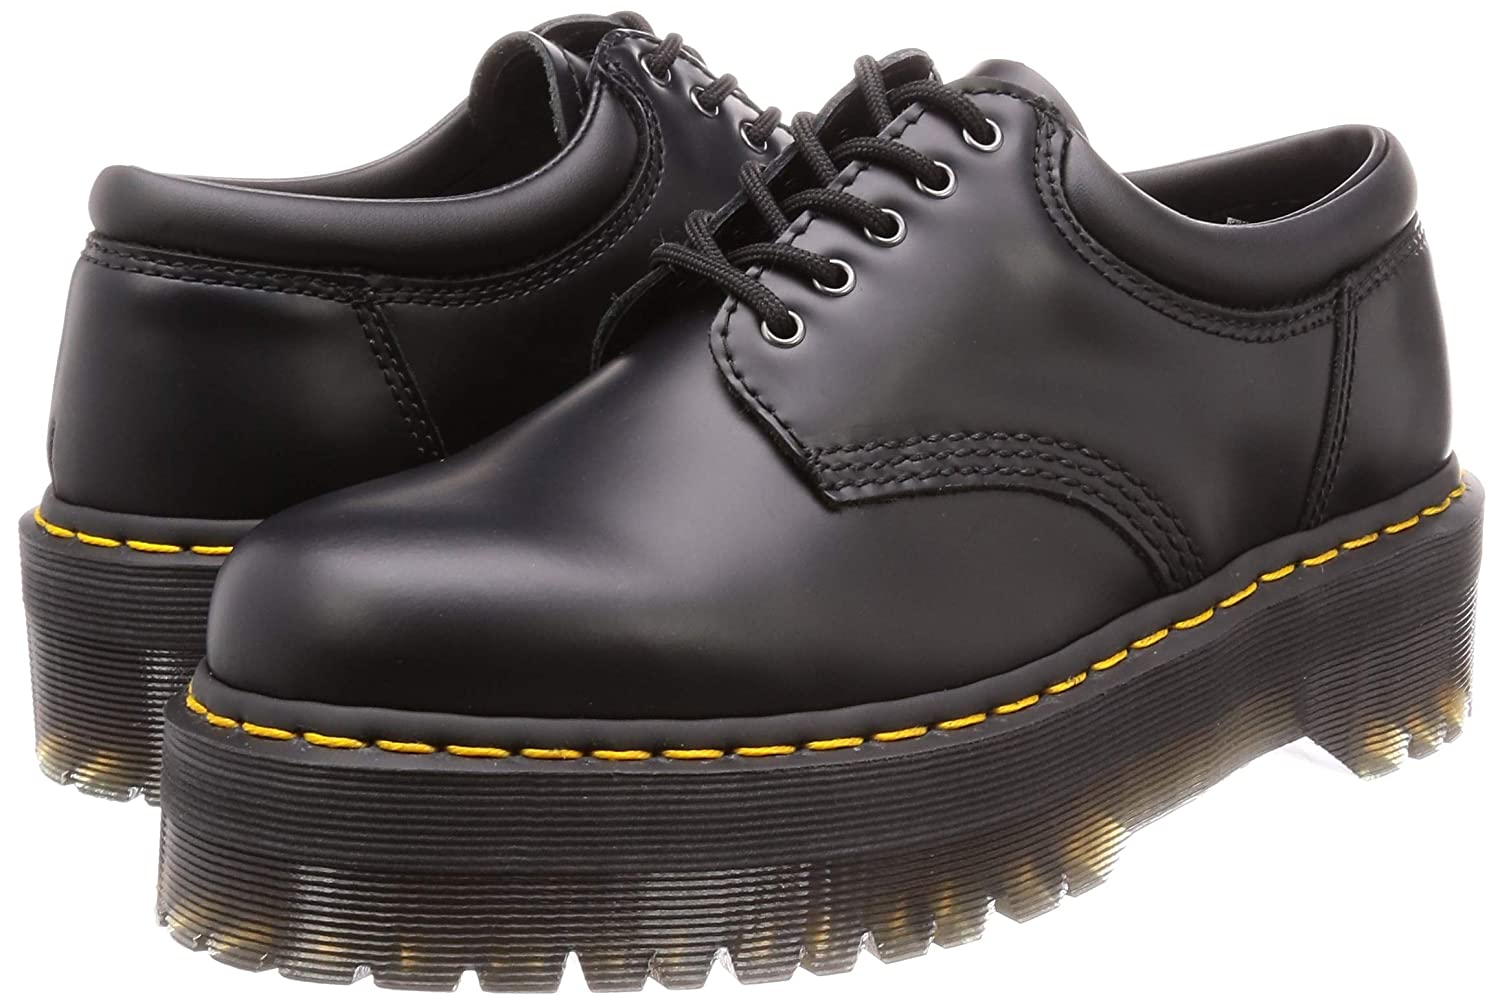 Martens 8053 Polished Chaussures Dr